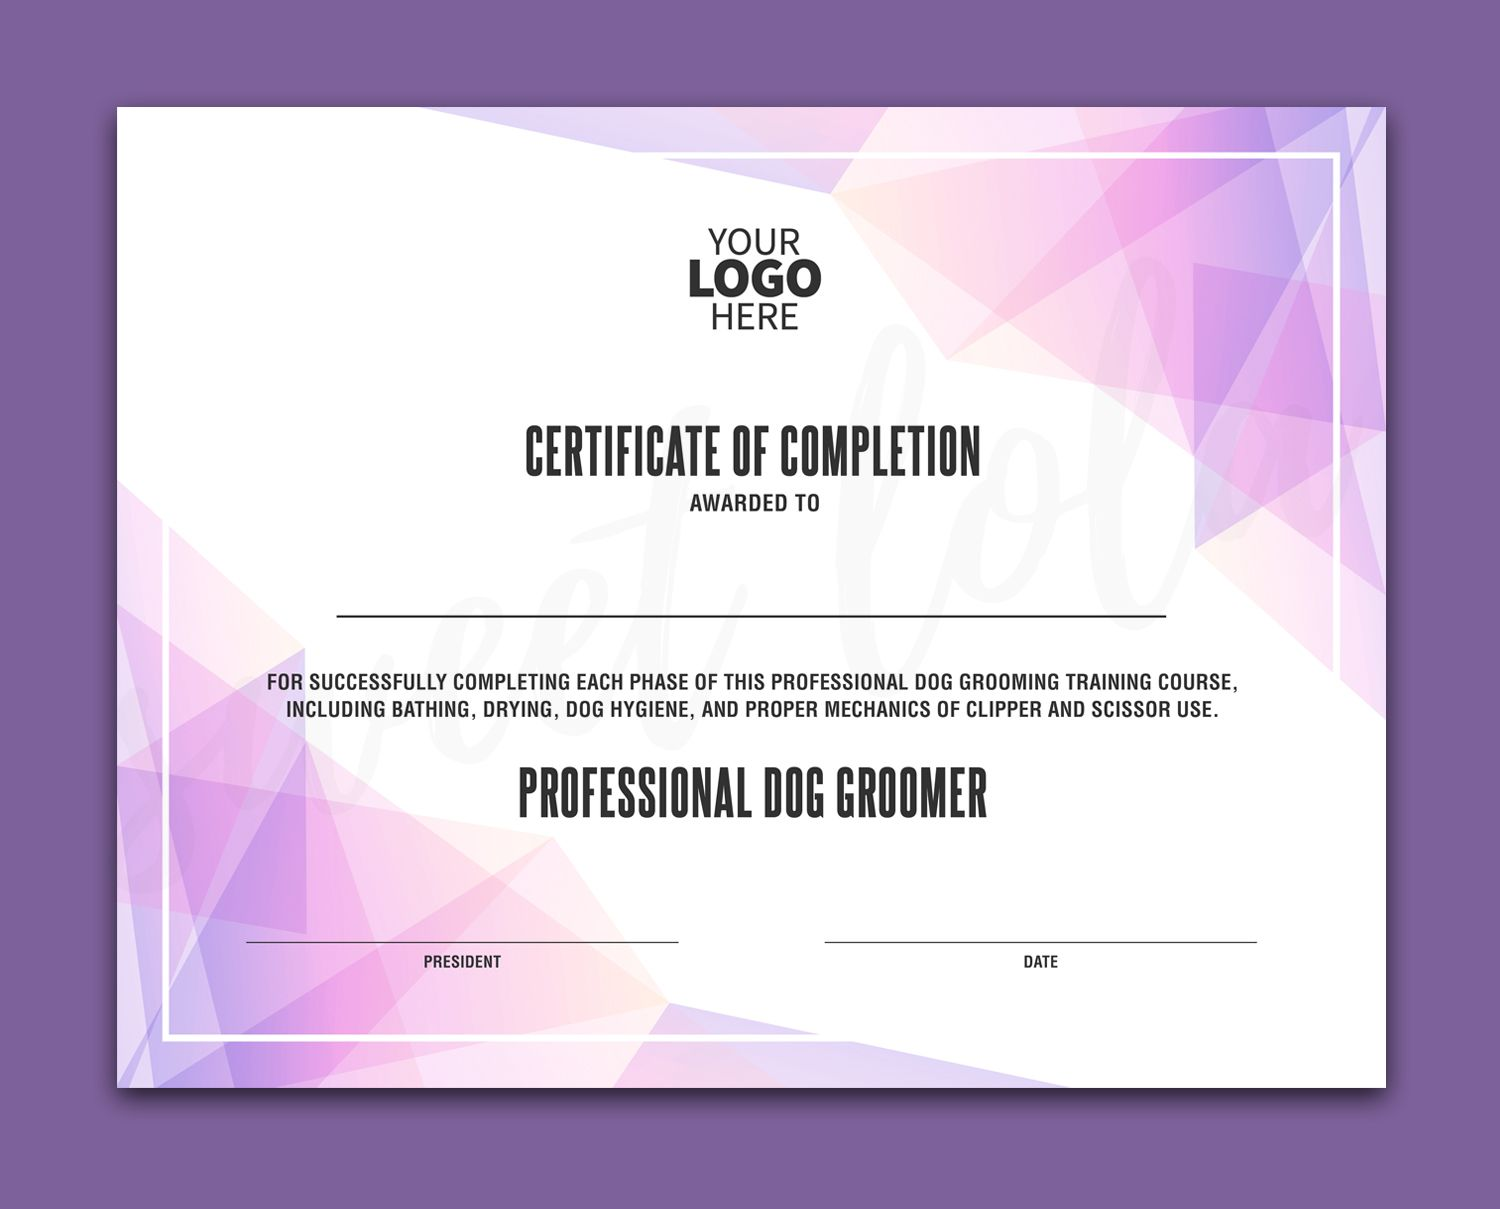 Certificate Template Instant Download Certificate Of Completion